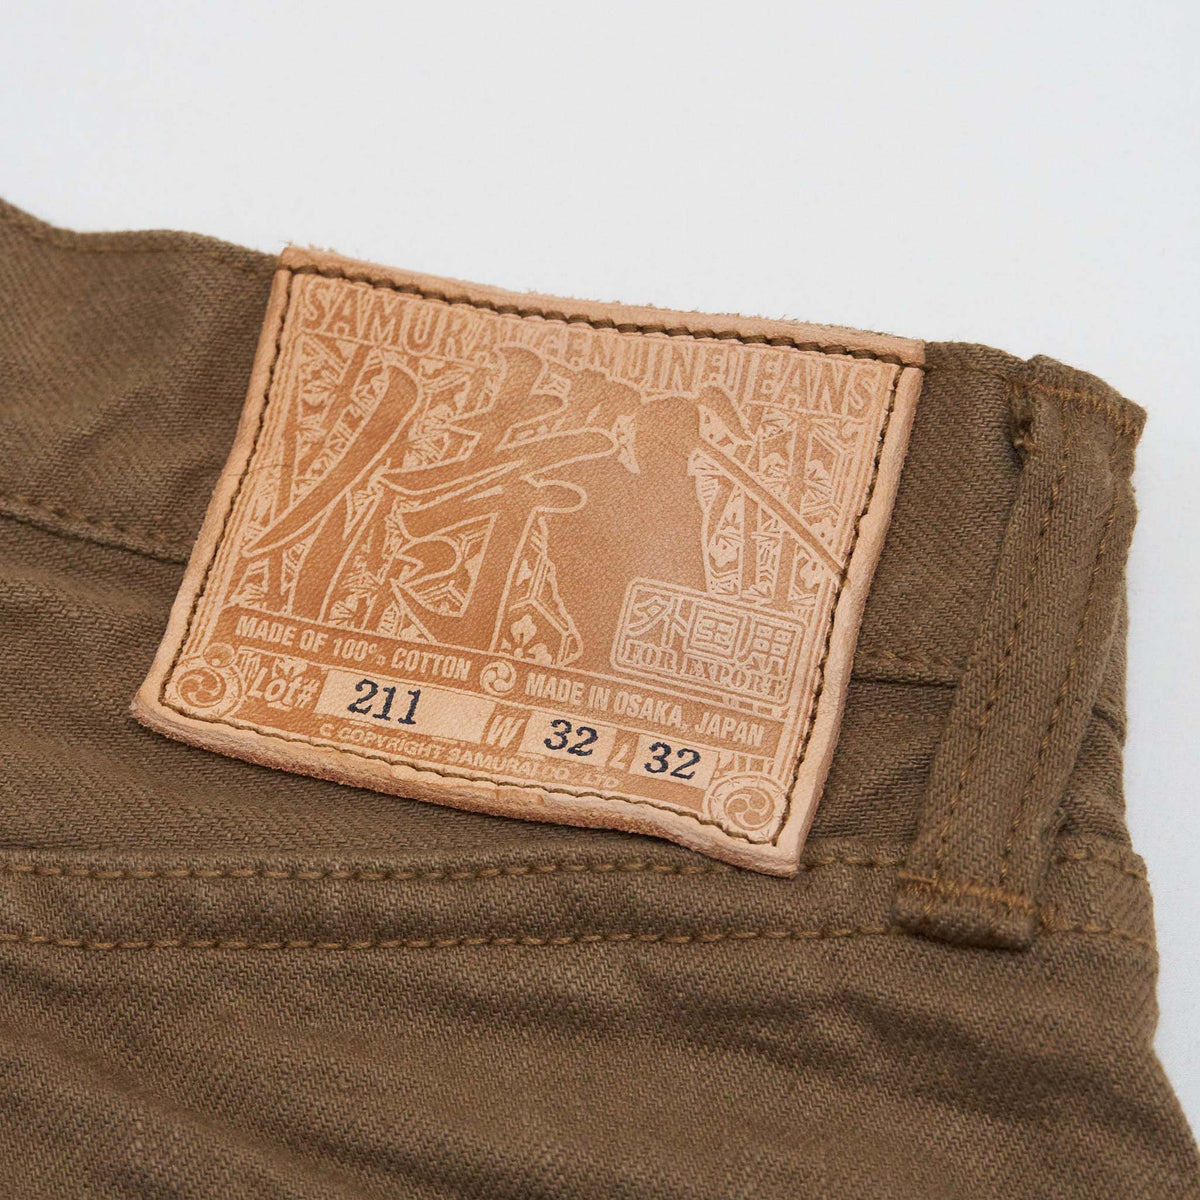 Samurai Jeans Sulfide Dyed Heavy 5-Pocket Jeans